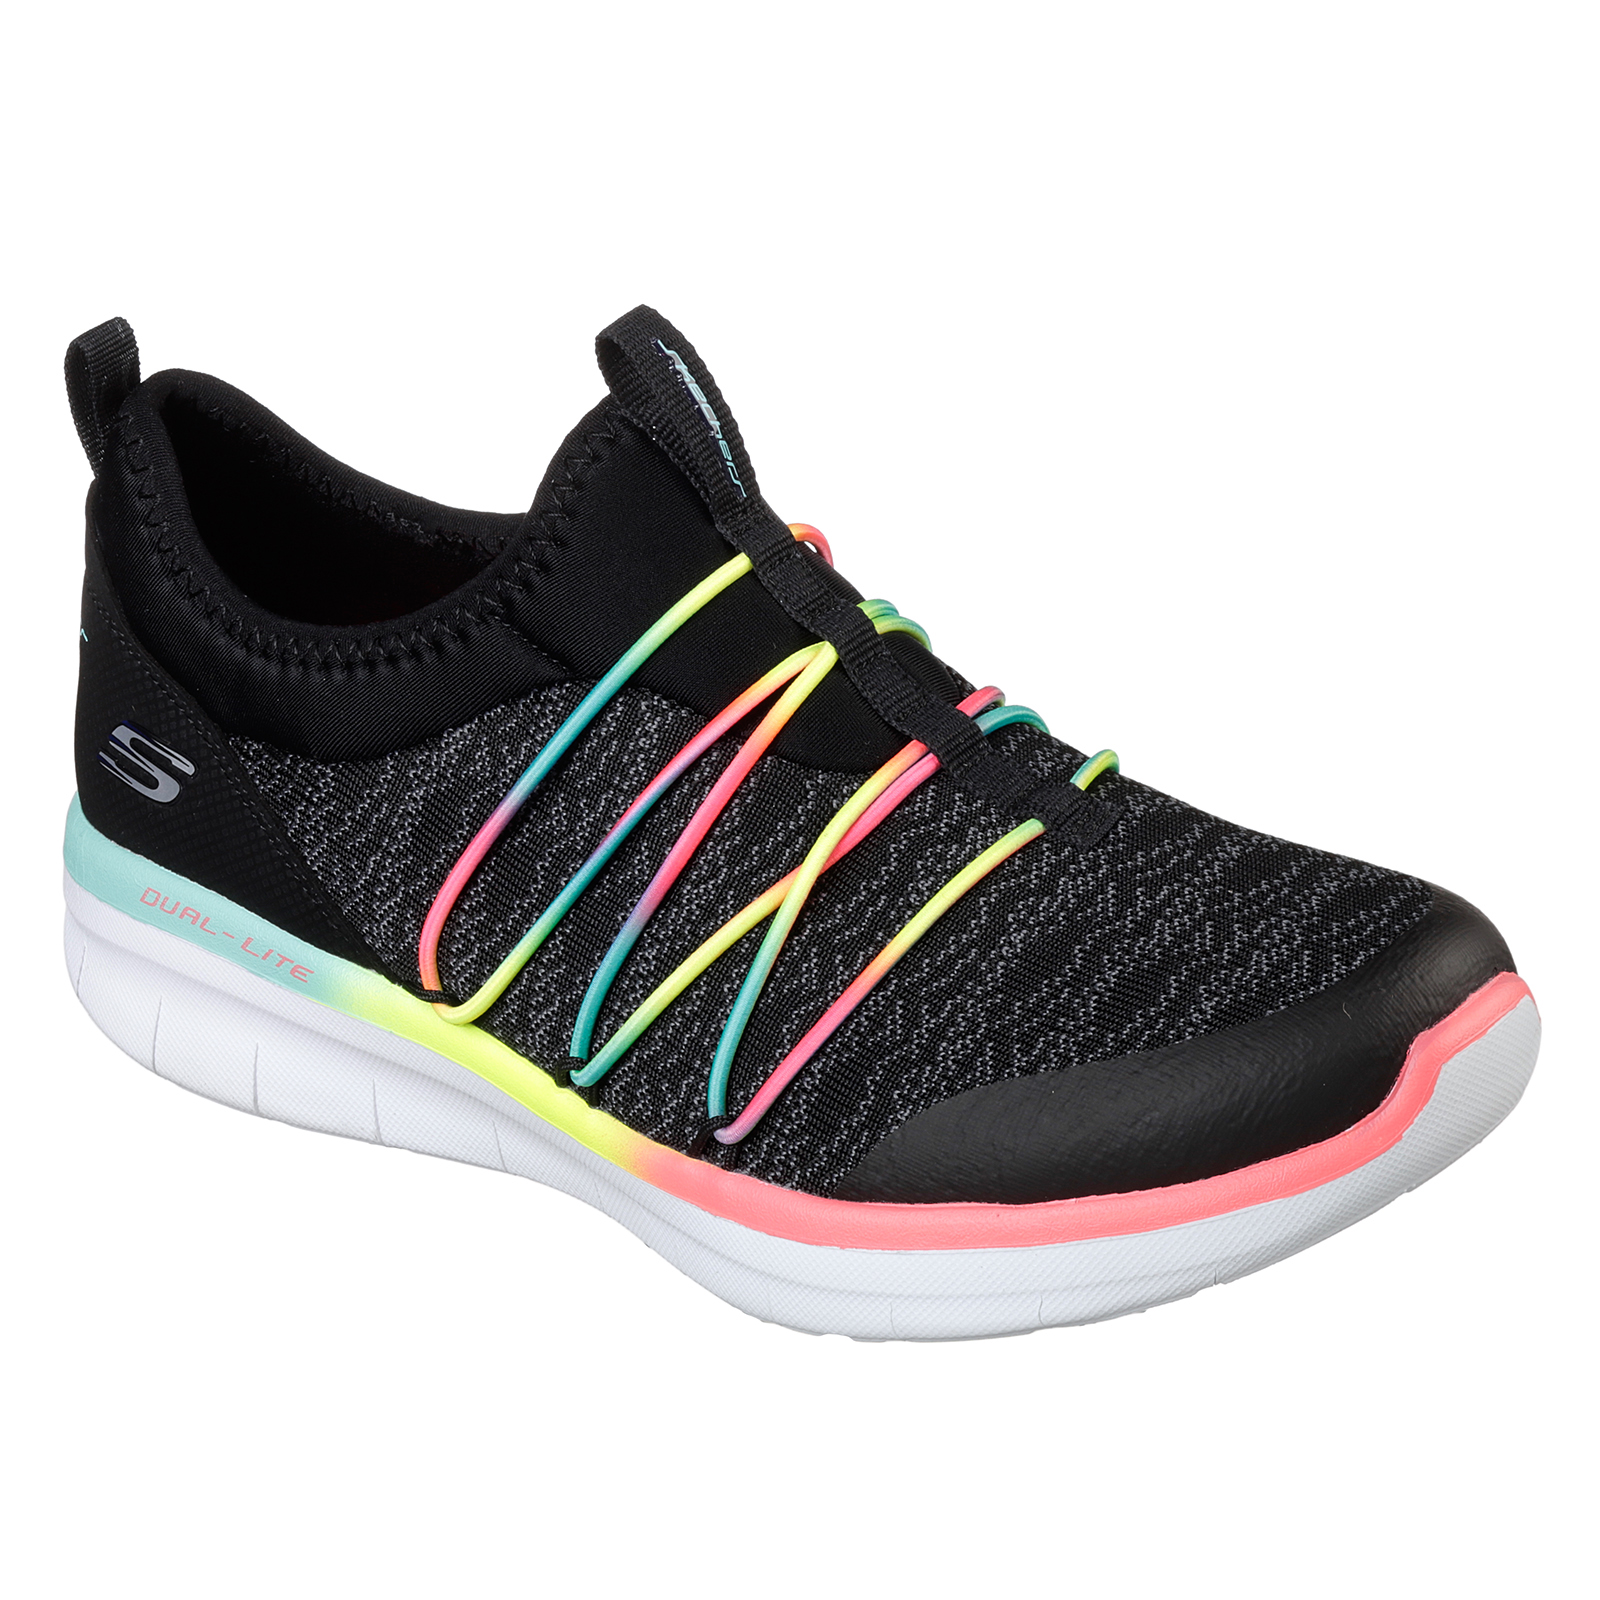 Skechers Damenschuhe Synergy Memory 2.0 Simply Chic Trainers Air Cooled Memory Synergy Foamed Schuhes 0f4fd4